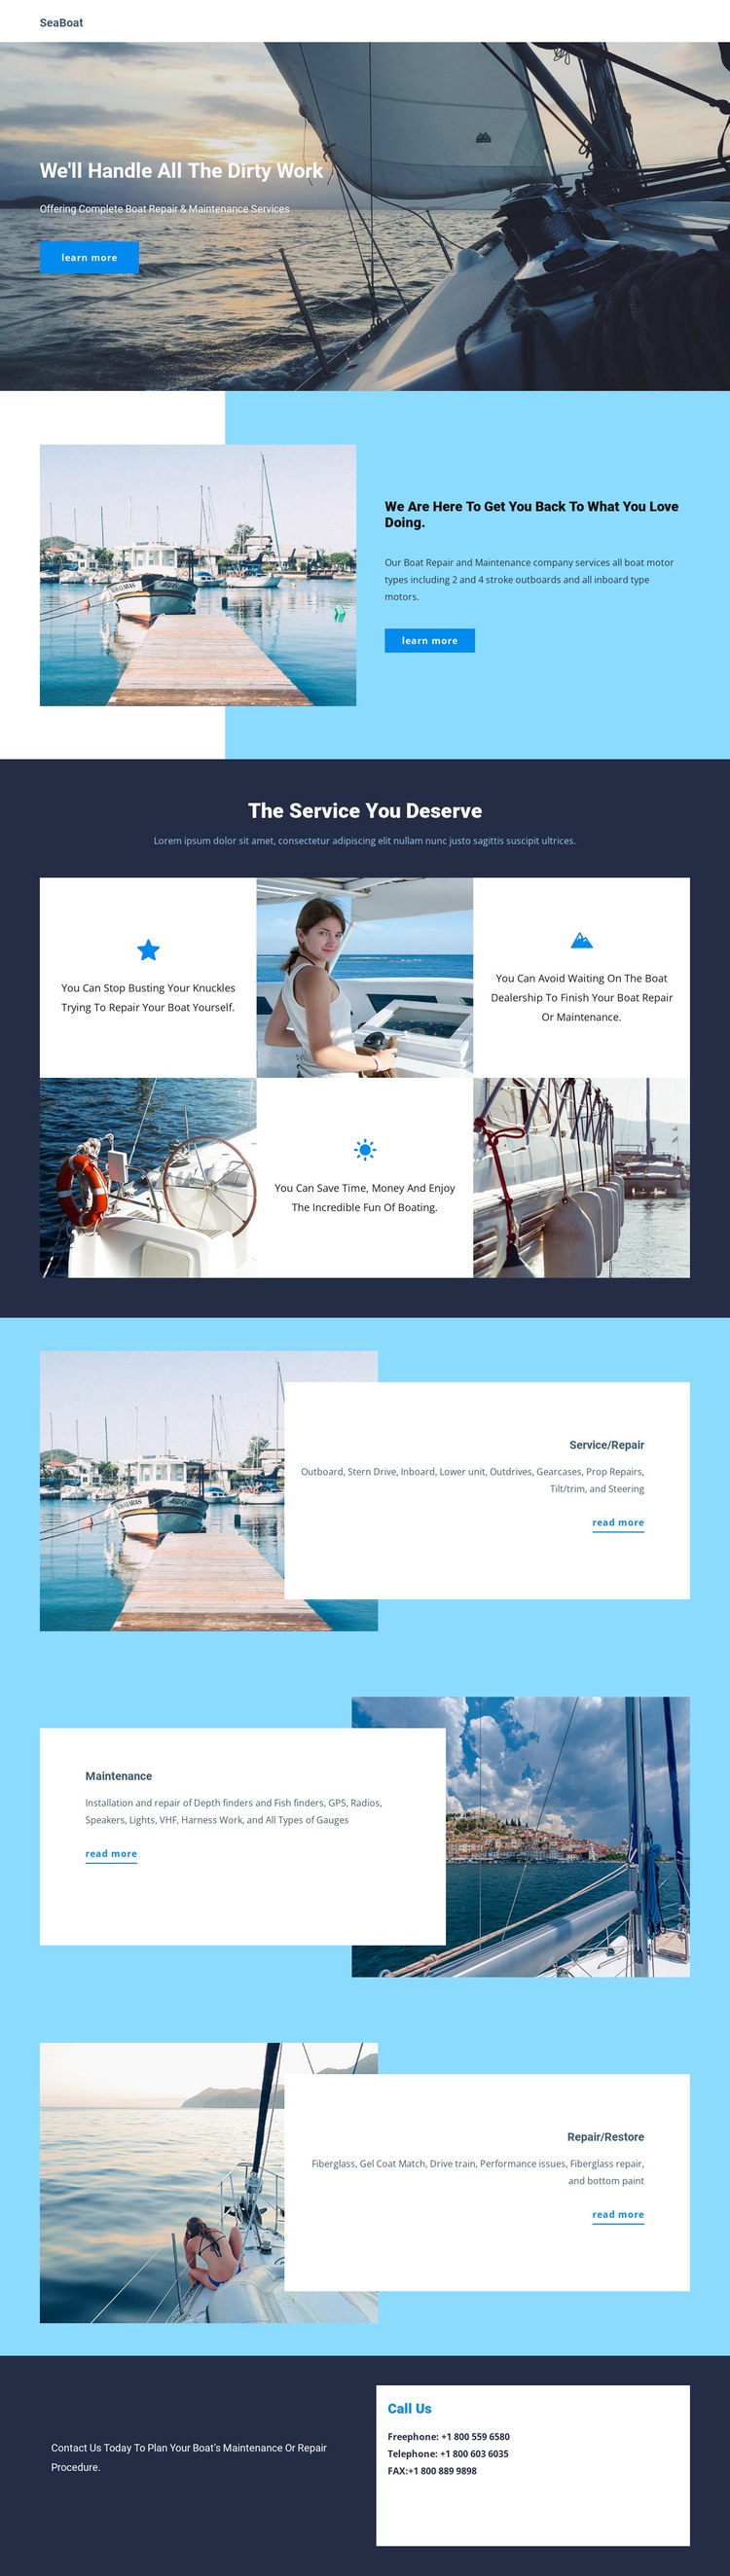 Travel on Seaboat WordPress Theme